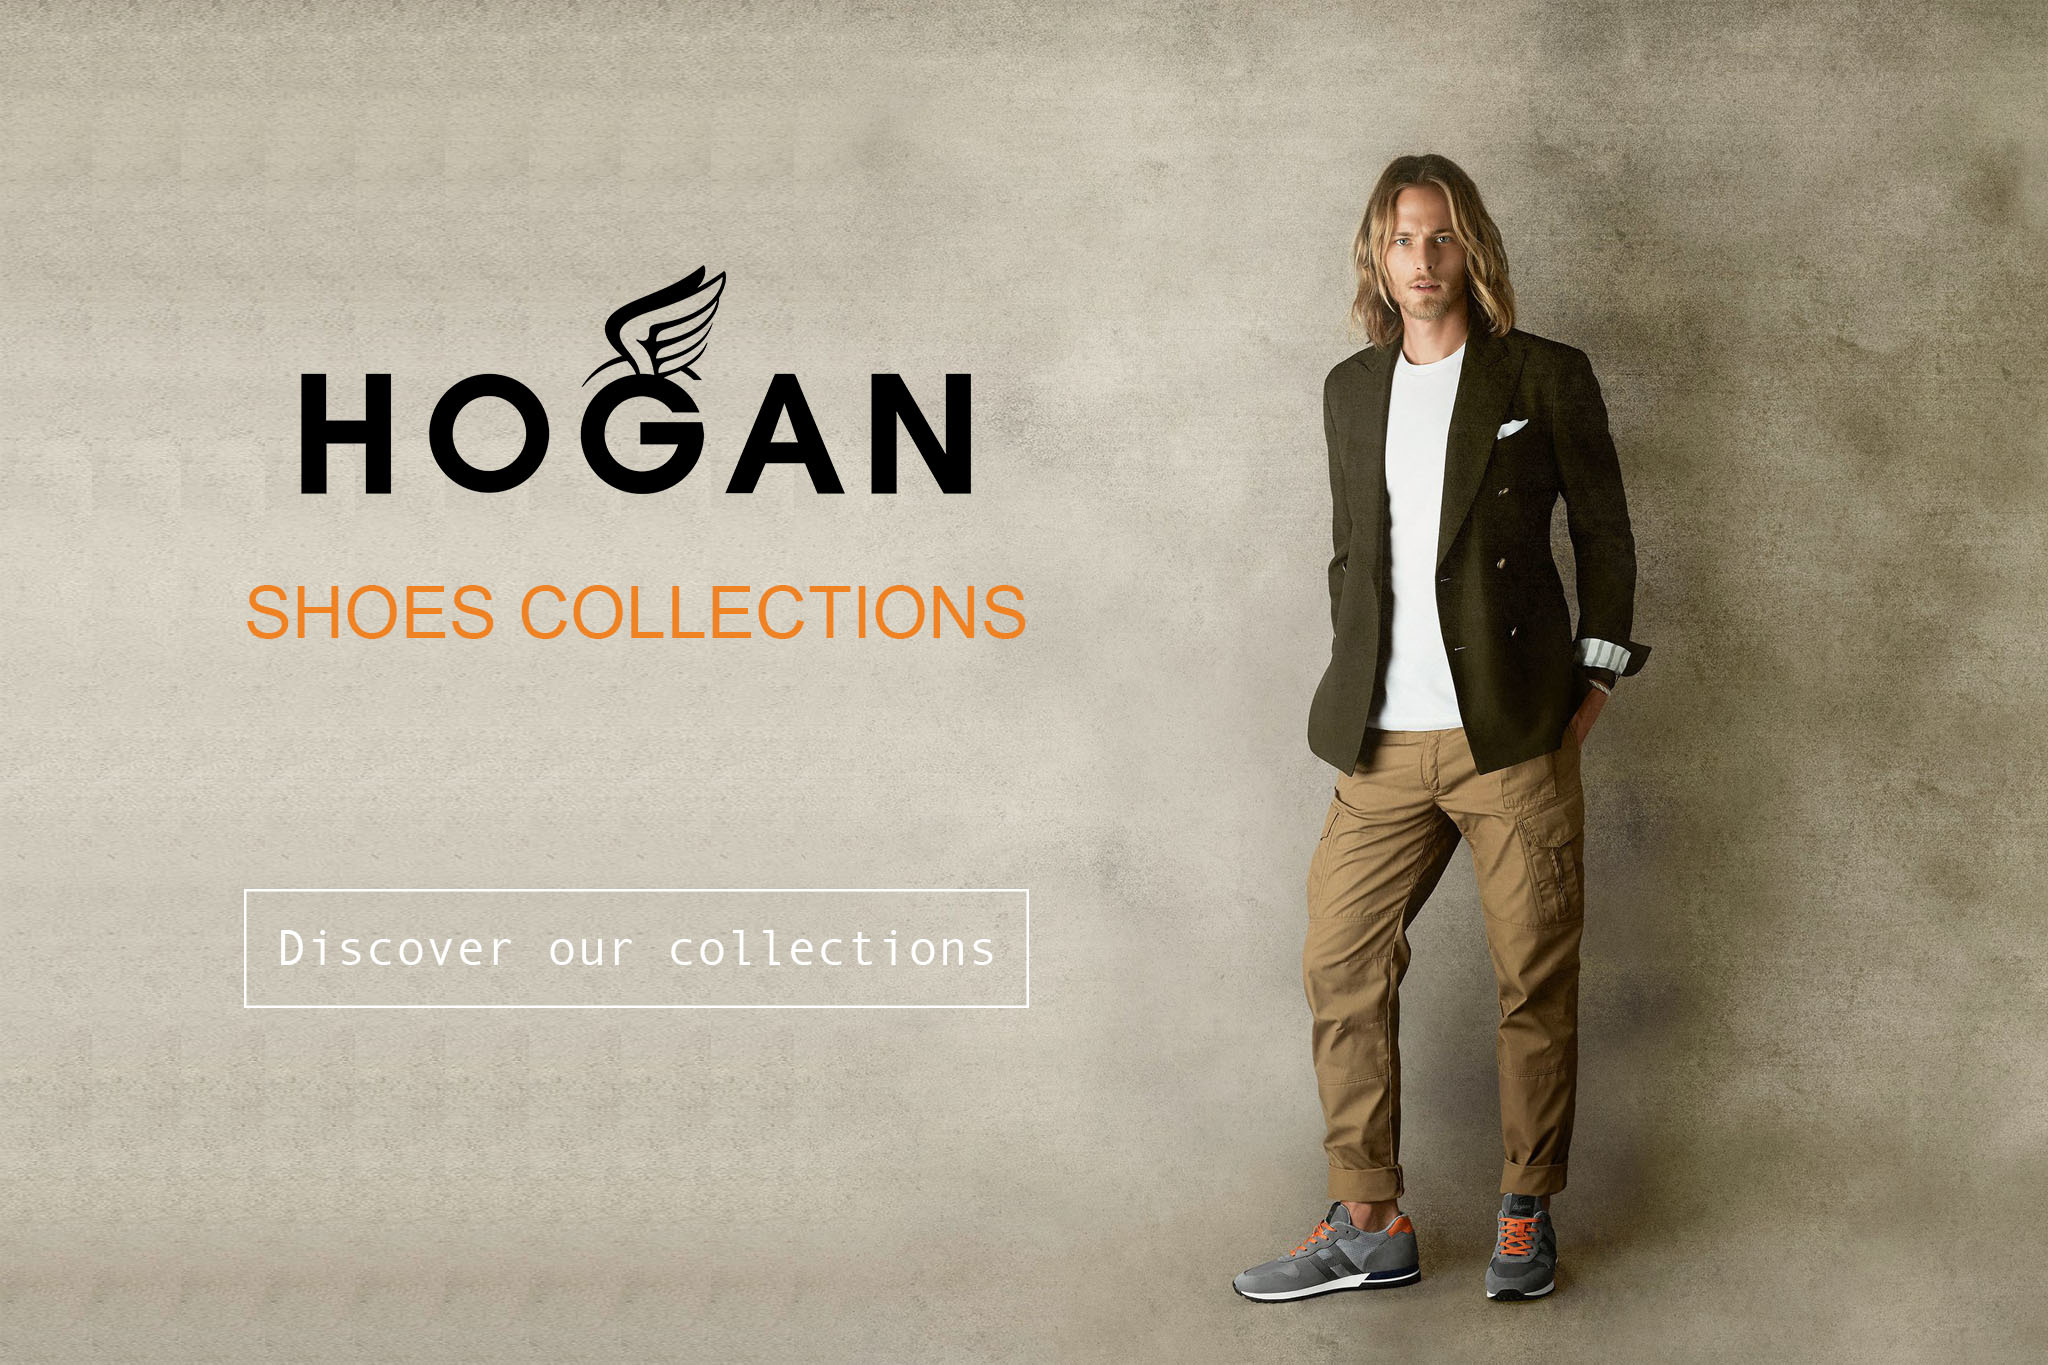 HOGAN Shoes Collections